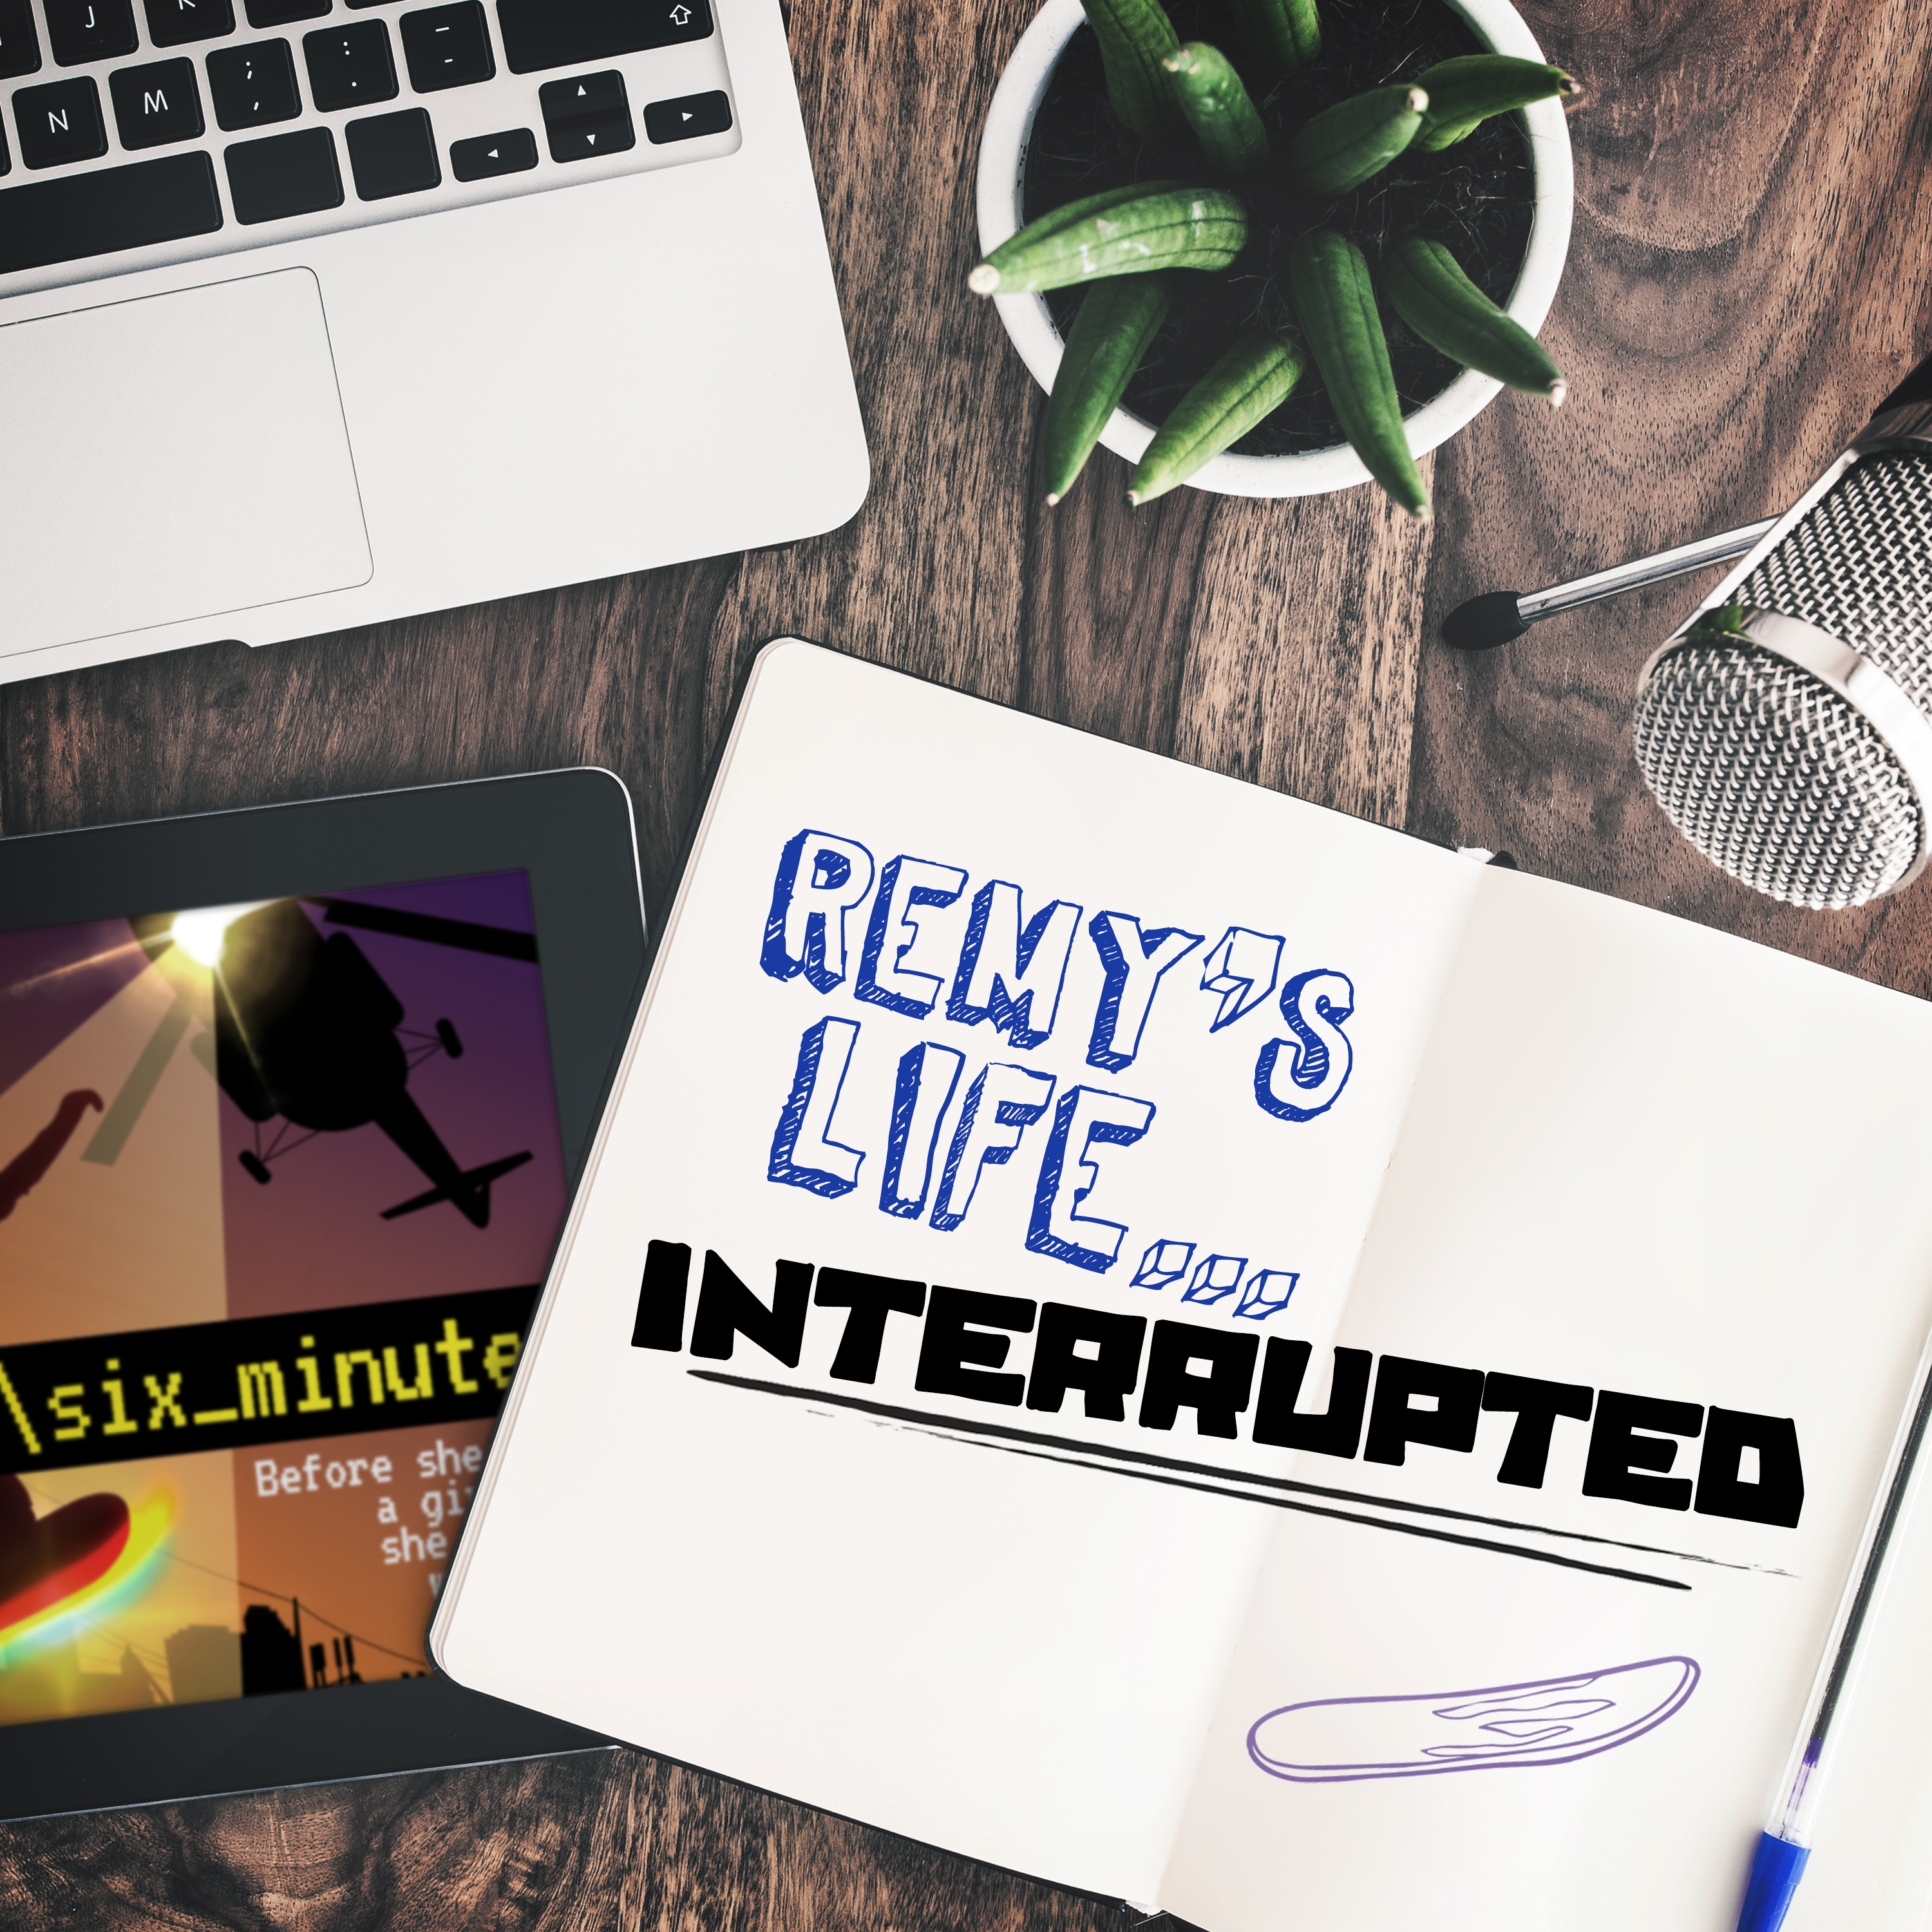 Remy's Life Interrupted: EP90